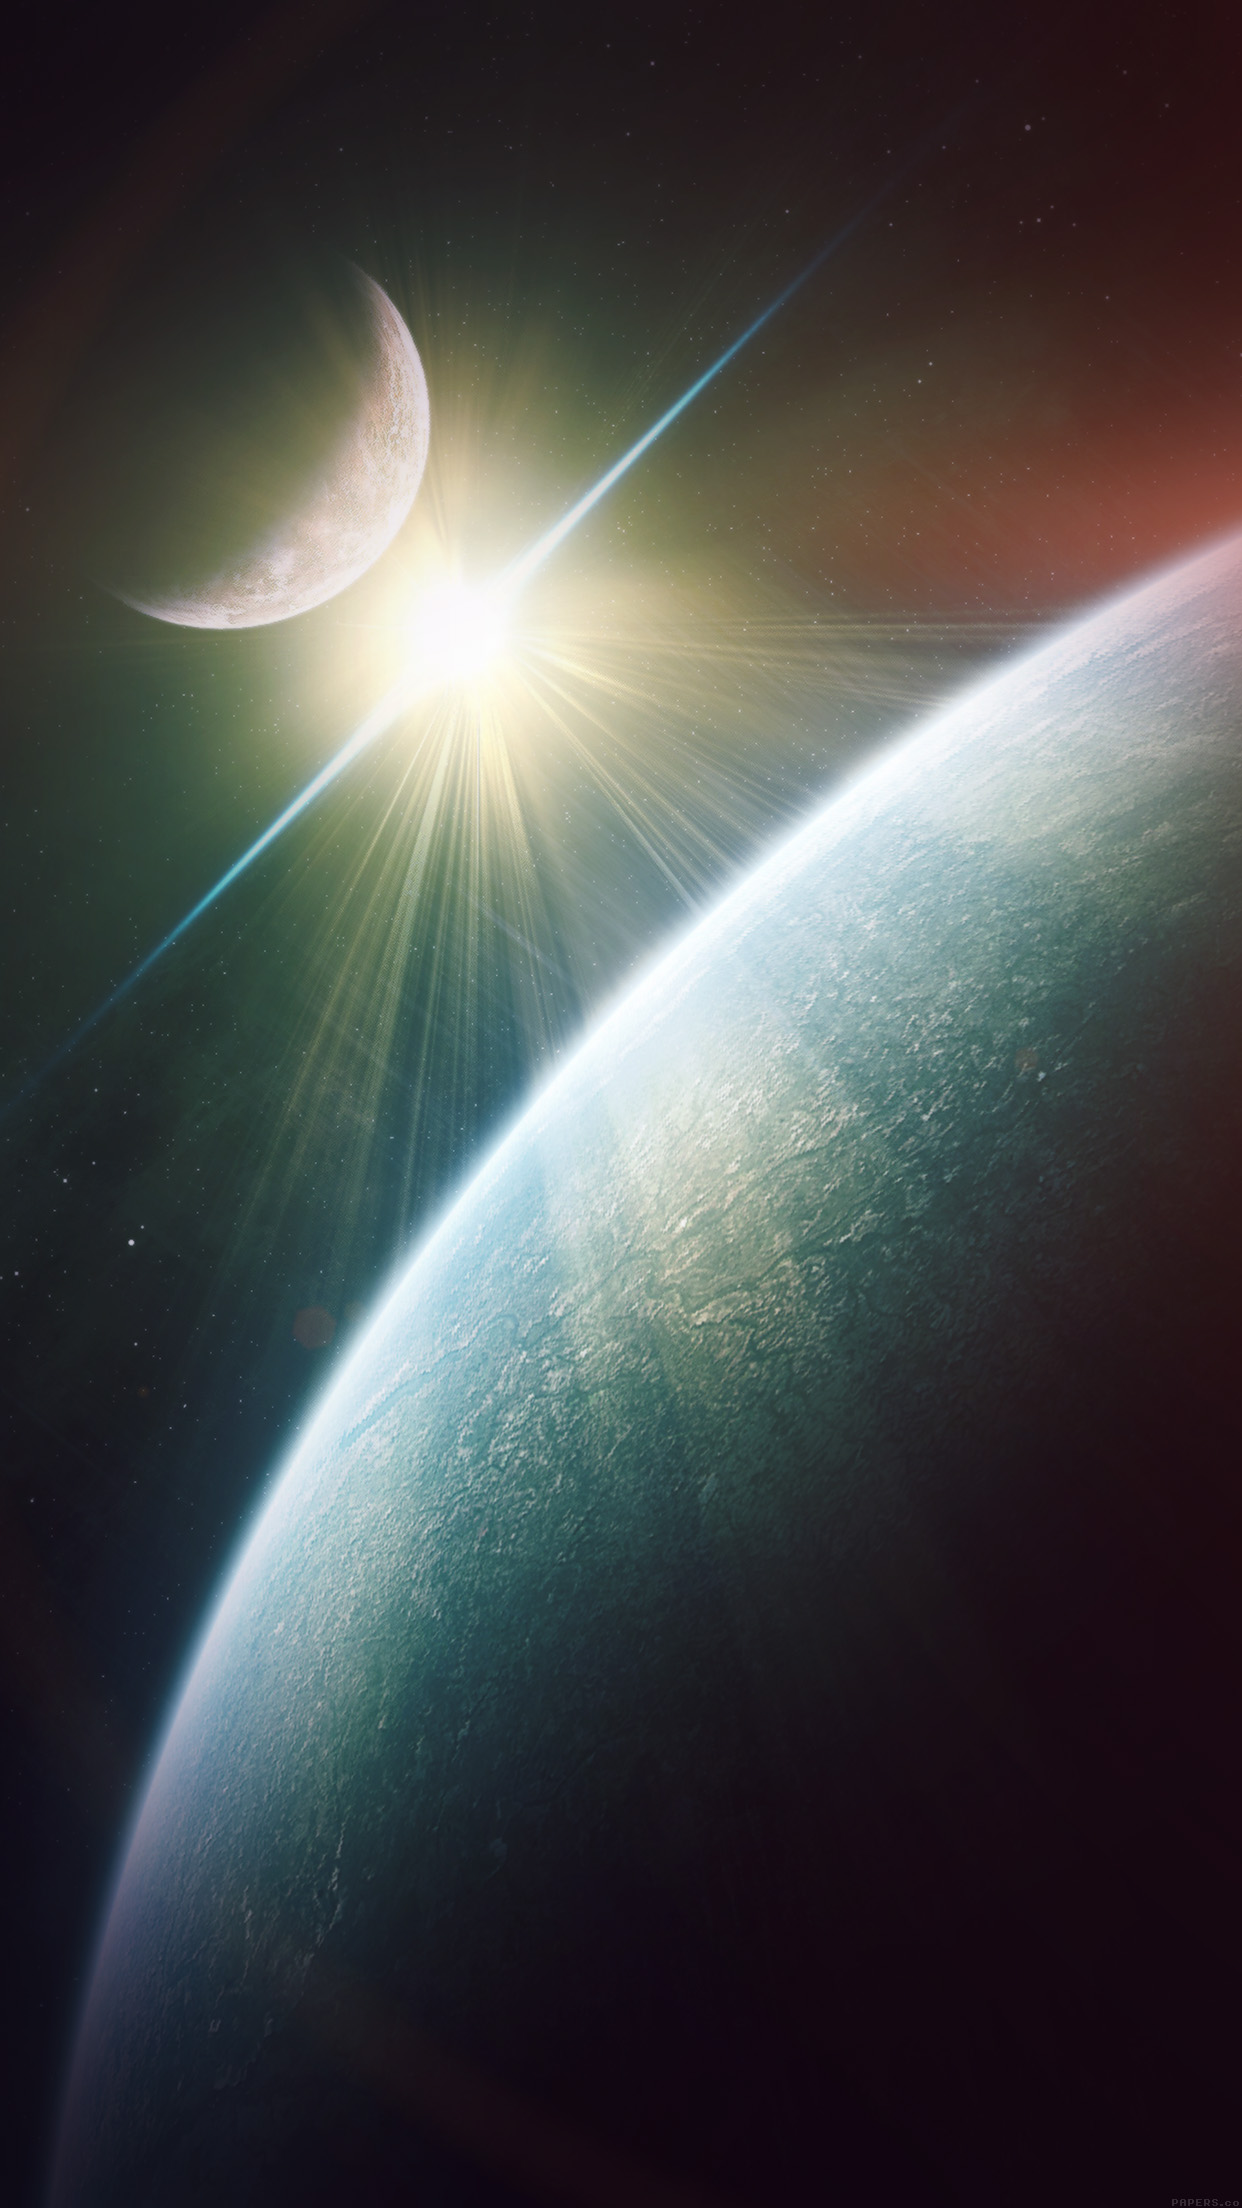 Hd Fall Wallpapers Phone Papers Co Iphone Wallpaper Mo19 Dark Space World Earth